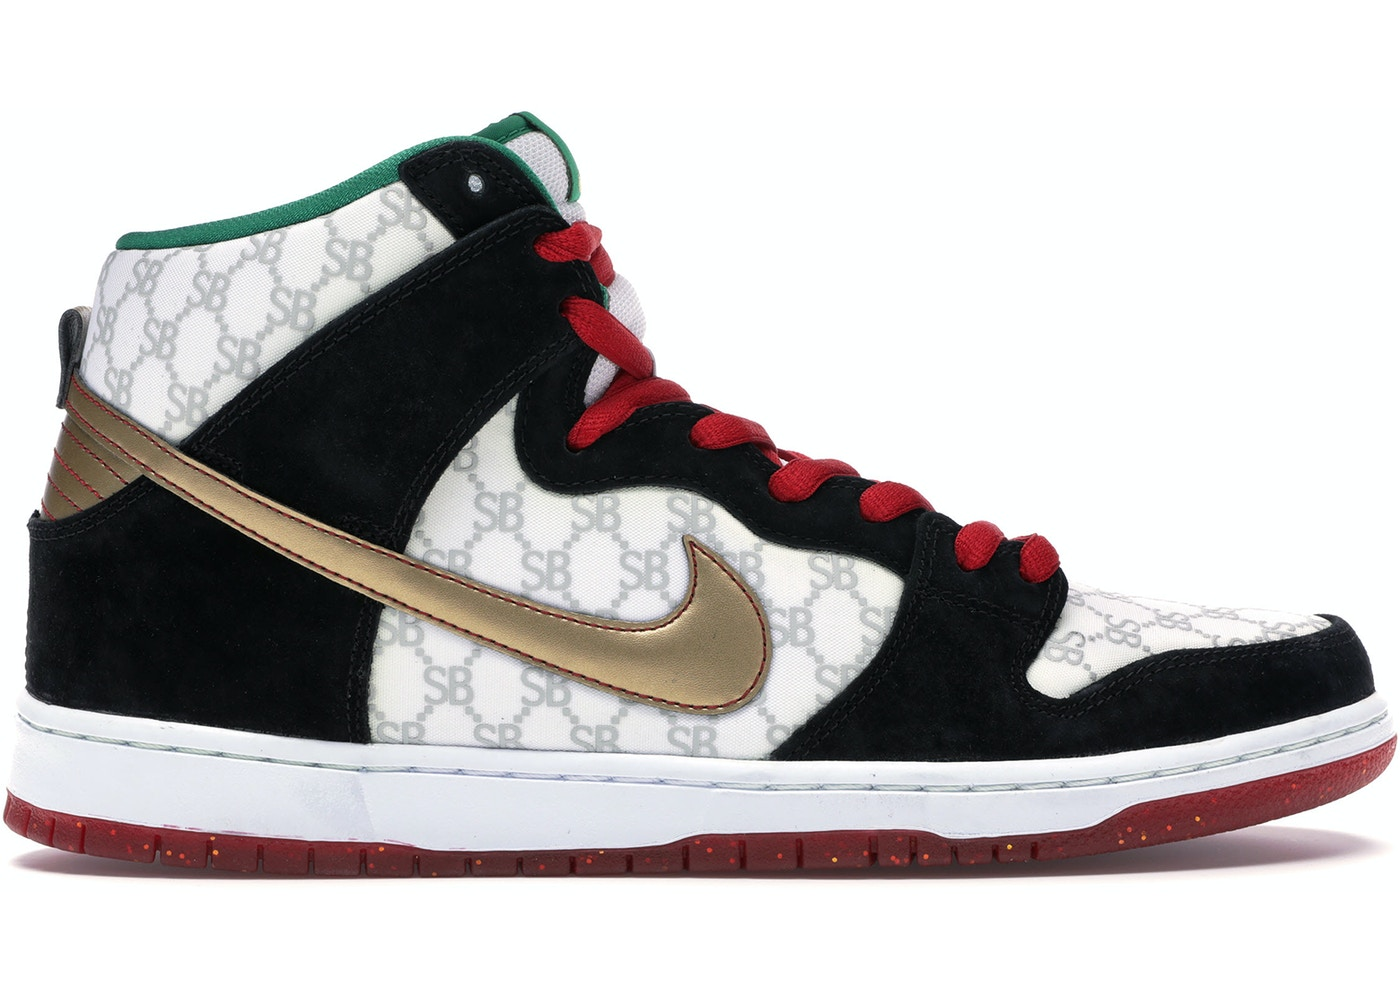 promo code a8d43 201c5 Nike Dunk SB High Black Sheep